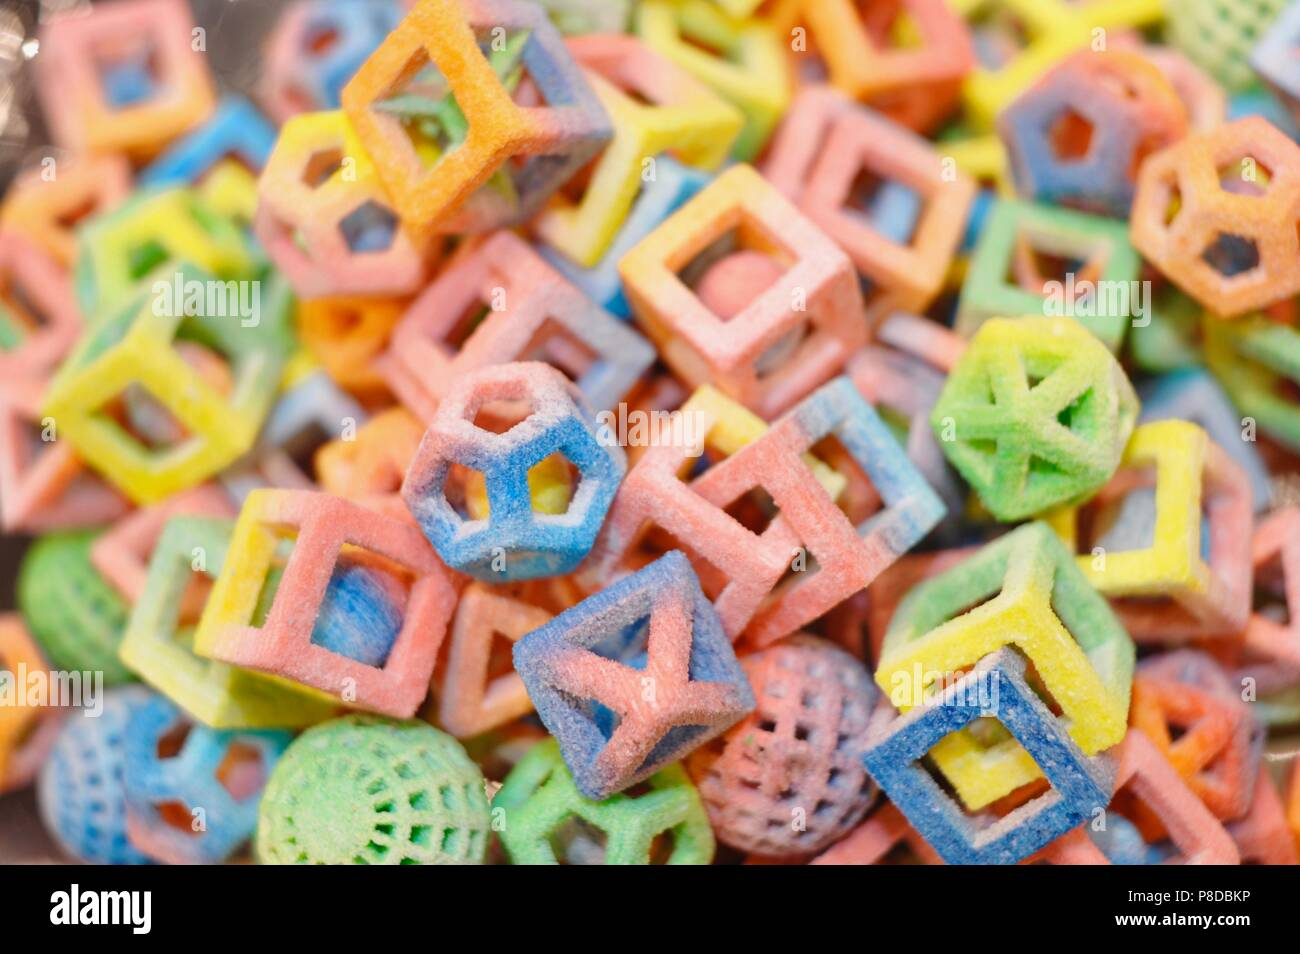 Culinary 3-D printing of various sugar shapes from 3D Systems' ChefJet 3D Printer on display at National Restaurant Show, Chicago, Illinois, USA. - Stock Image